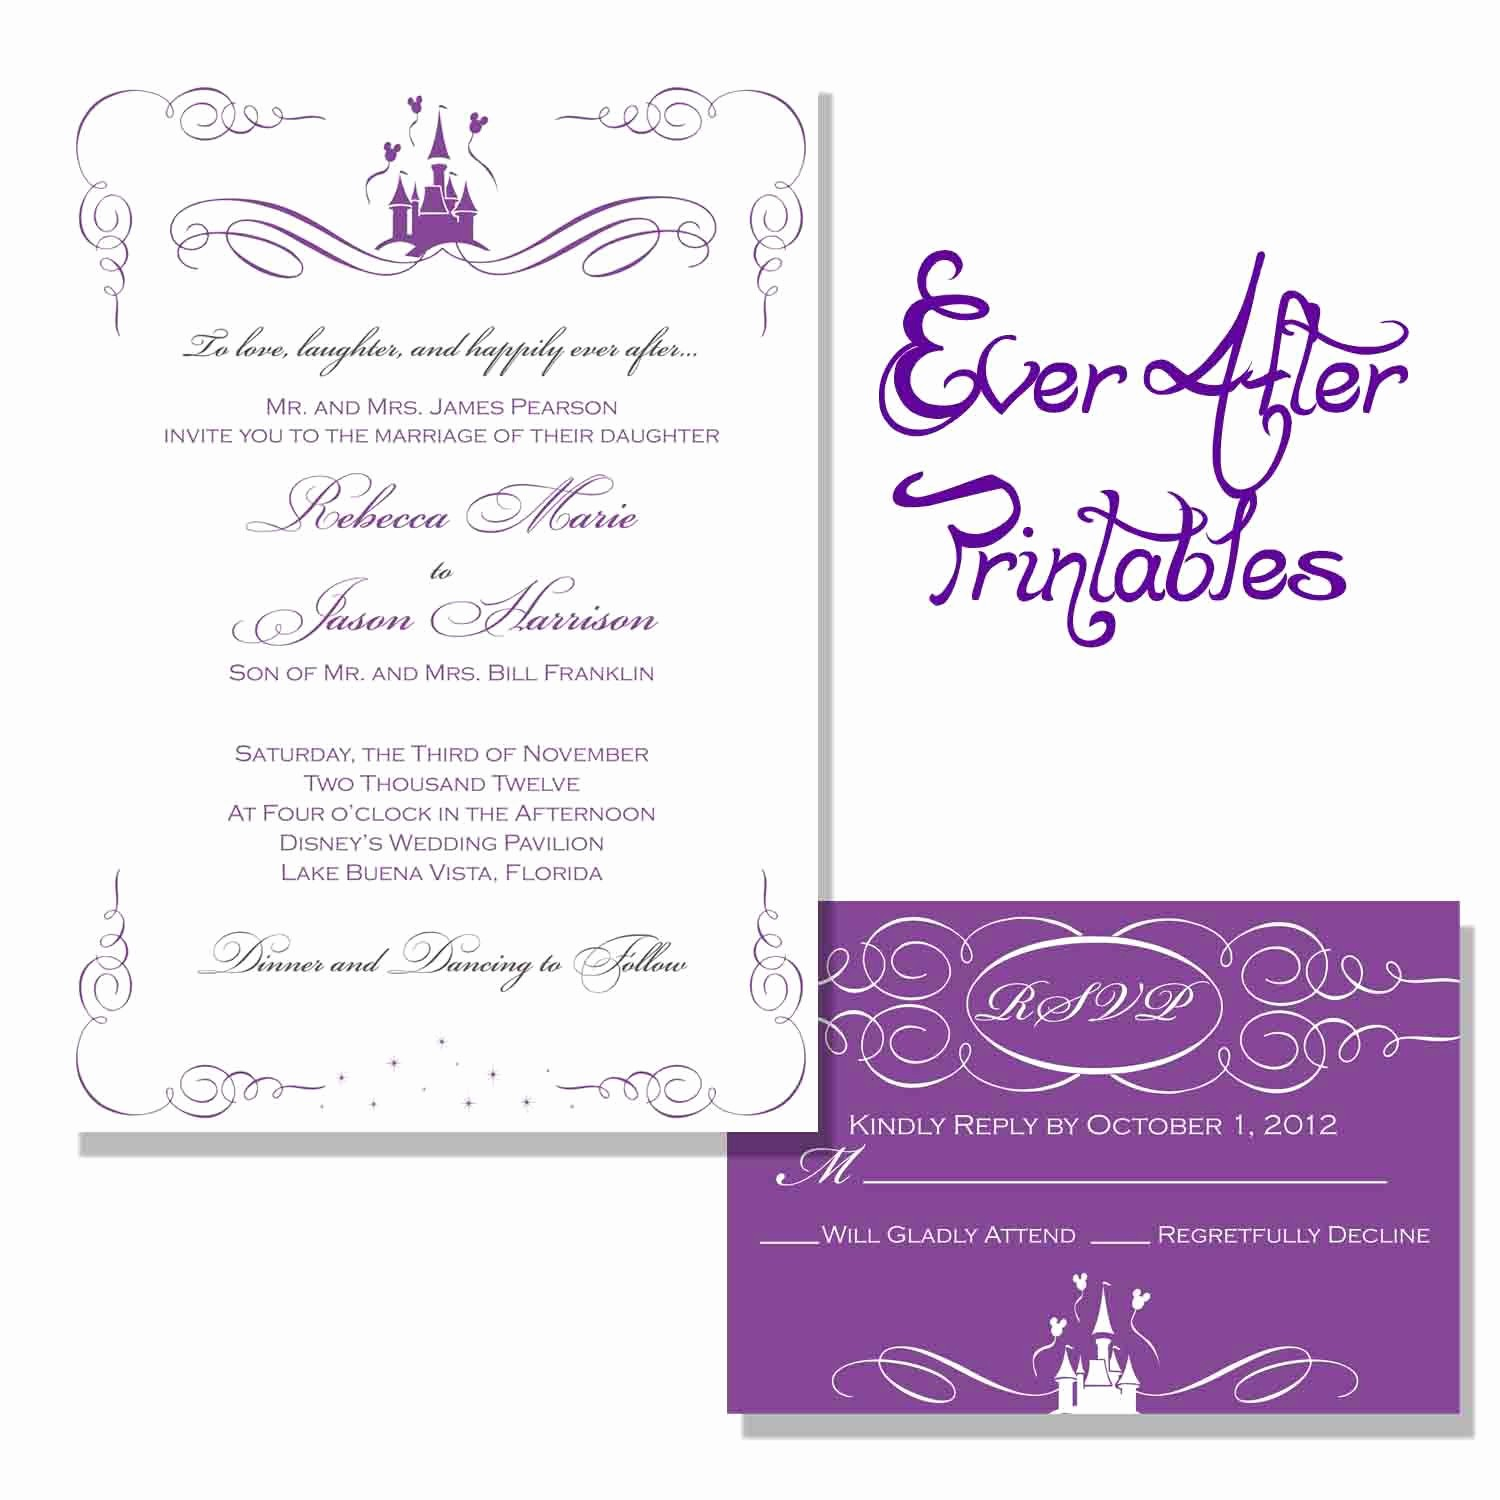 Wedding Invitation Template Word Free Luxury Engagement Party Invitation Word Templates Free Card